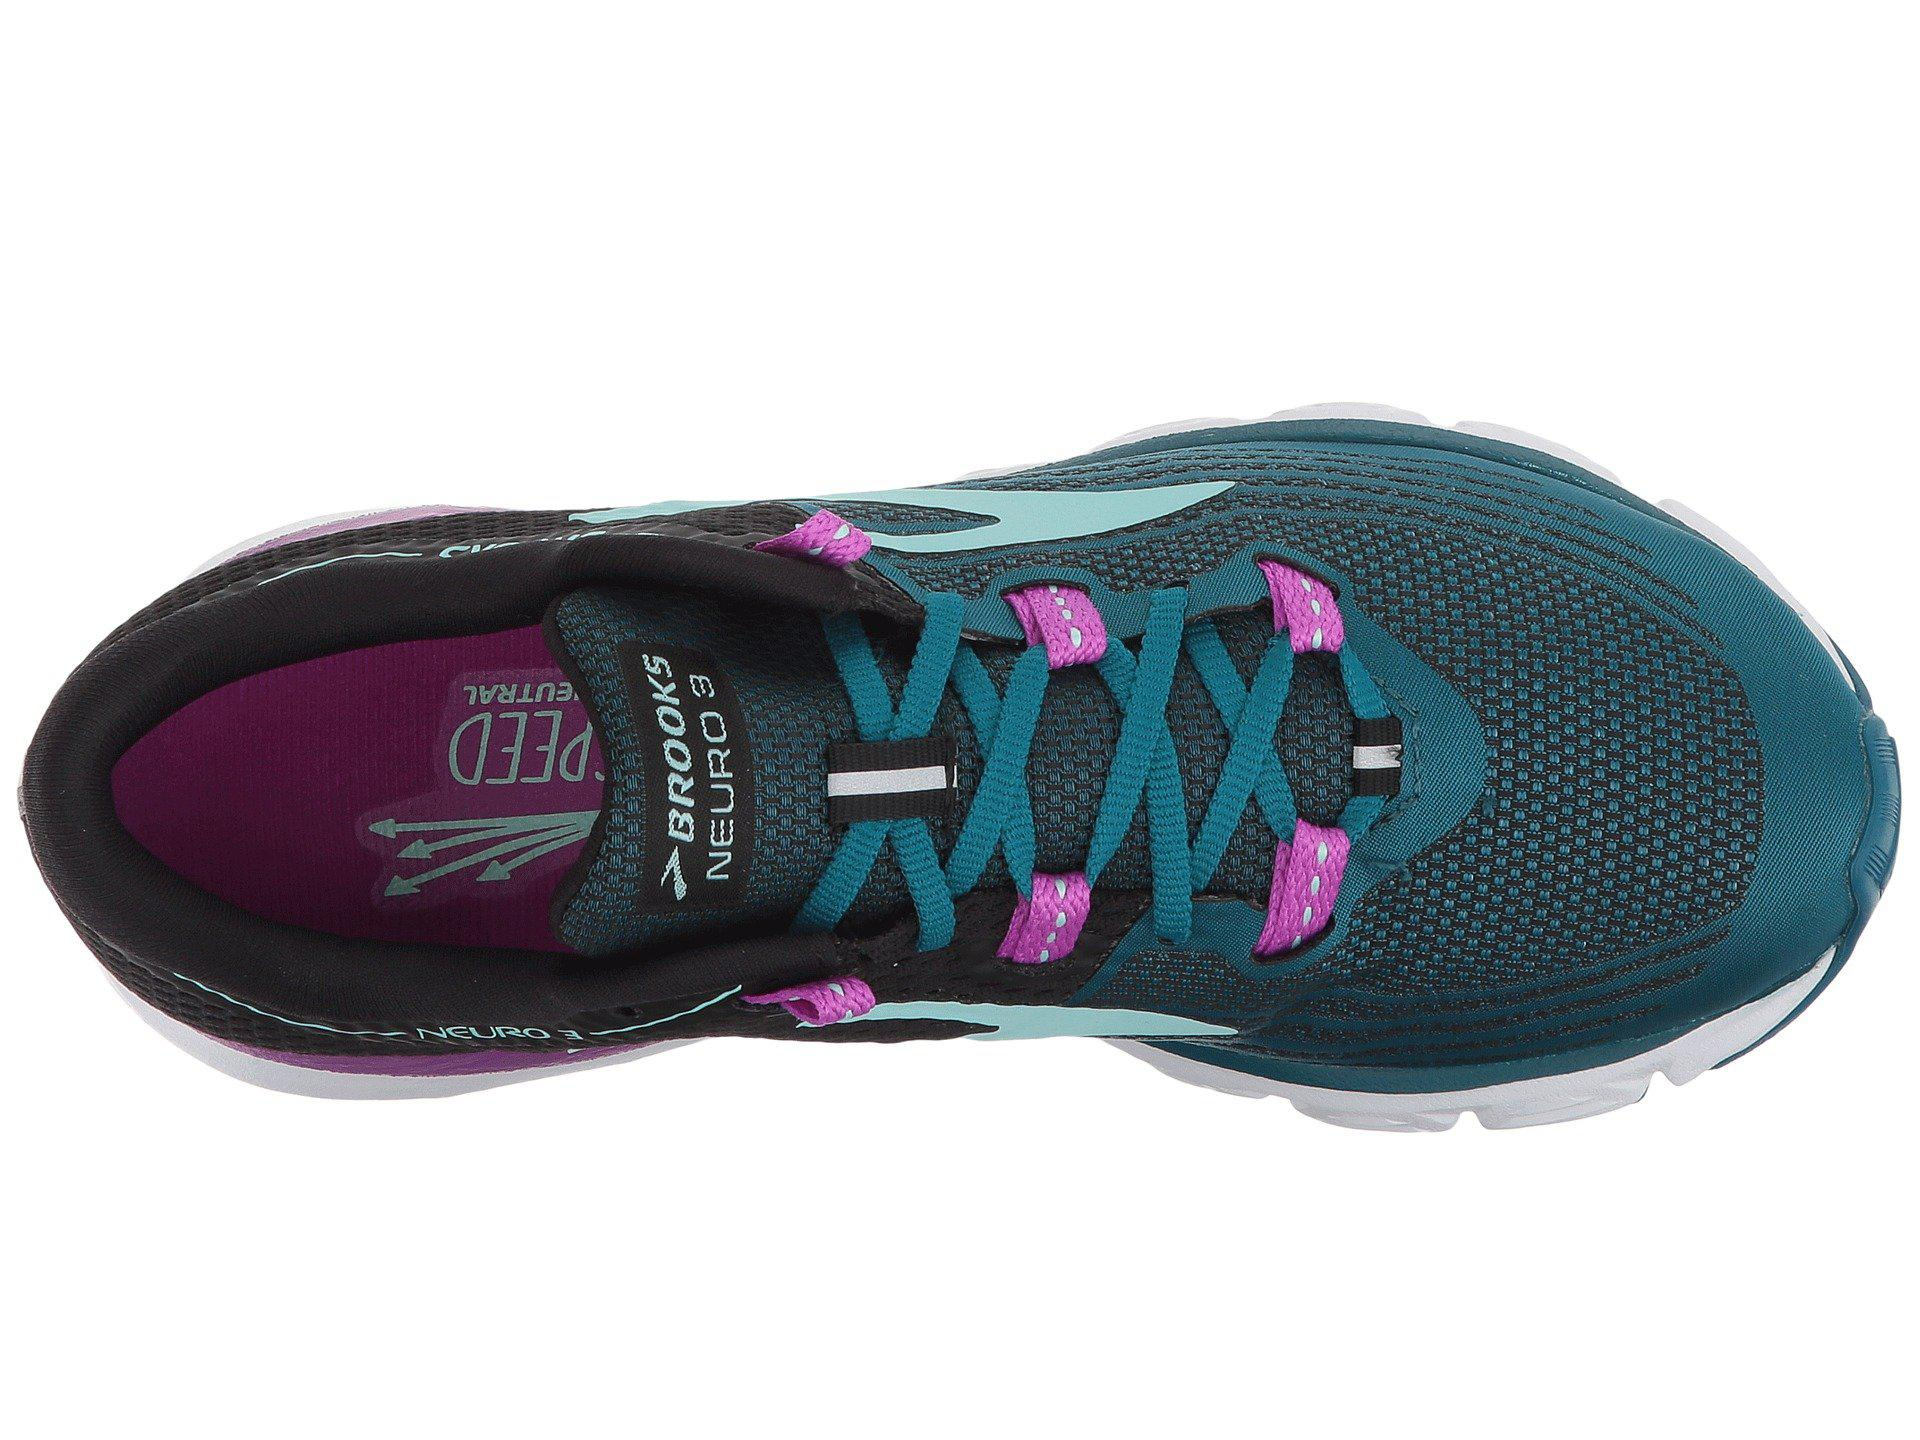 26c063dbeb0 Brooks - Multicolor Neuro 3 (lagoon black purple) Women s Running Shoes -.  View fullscreen